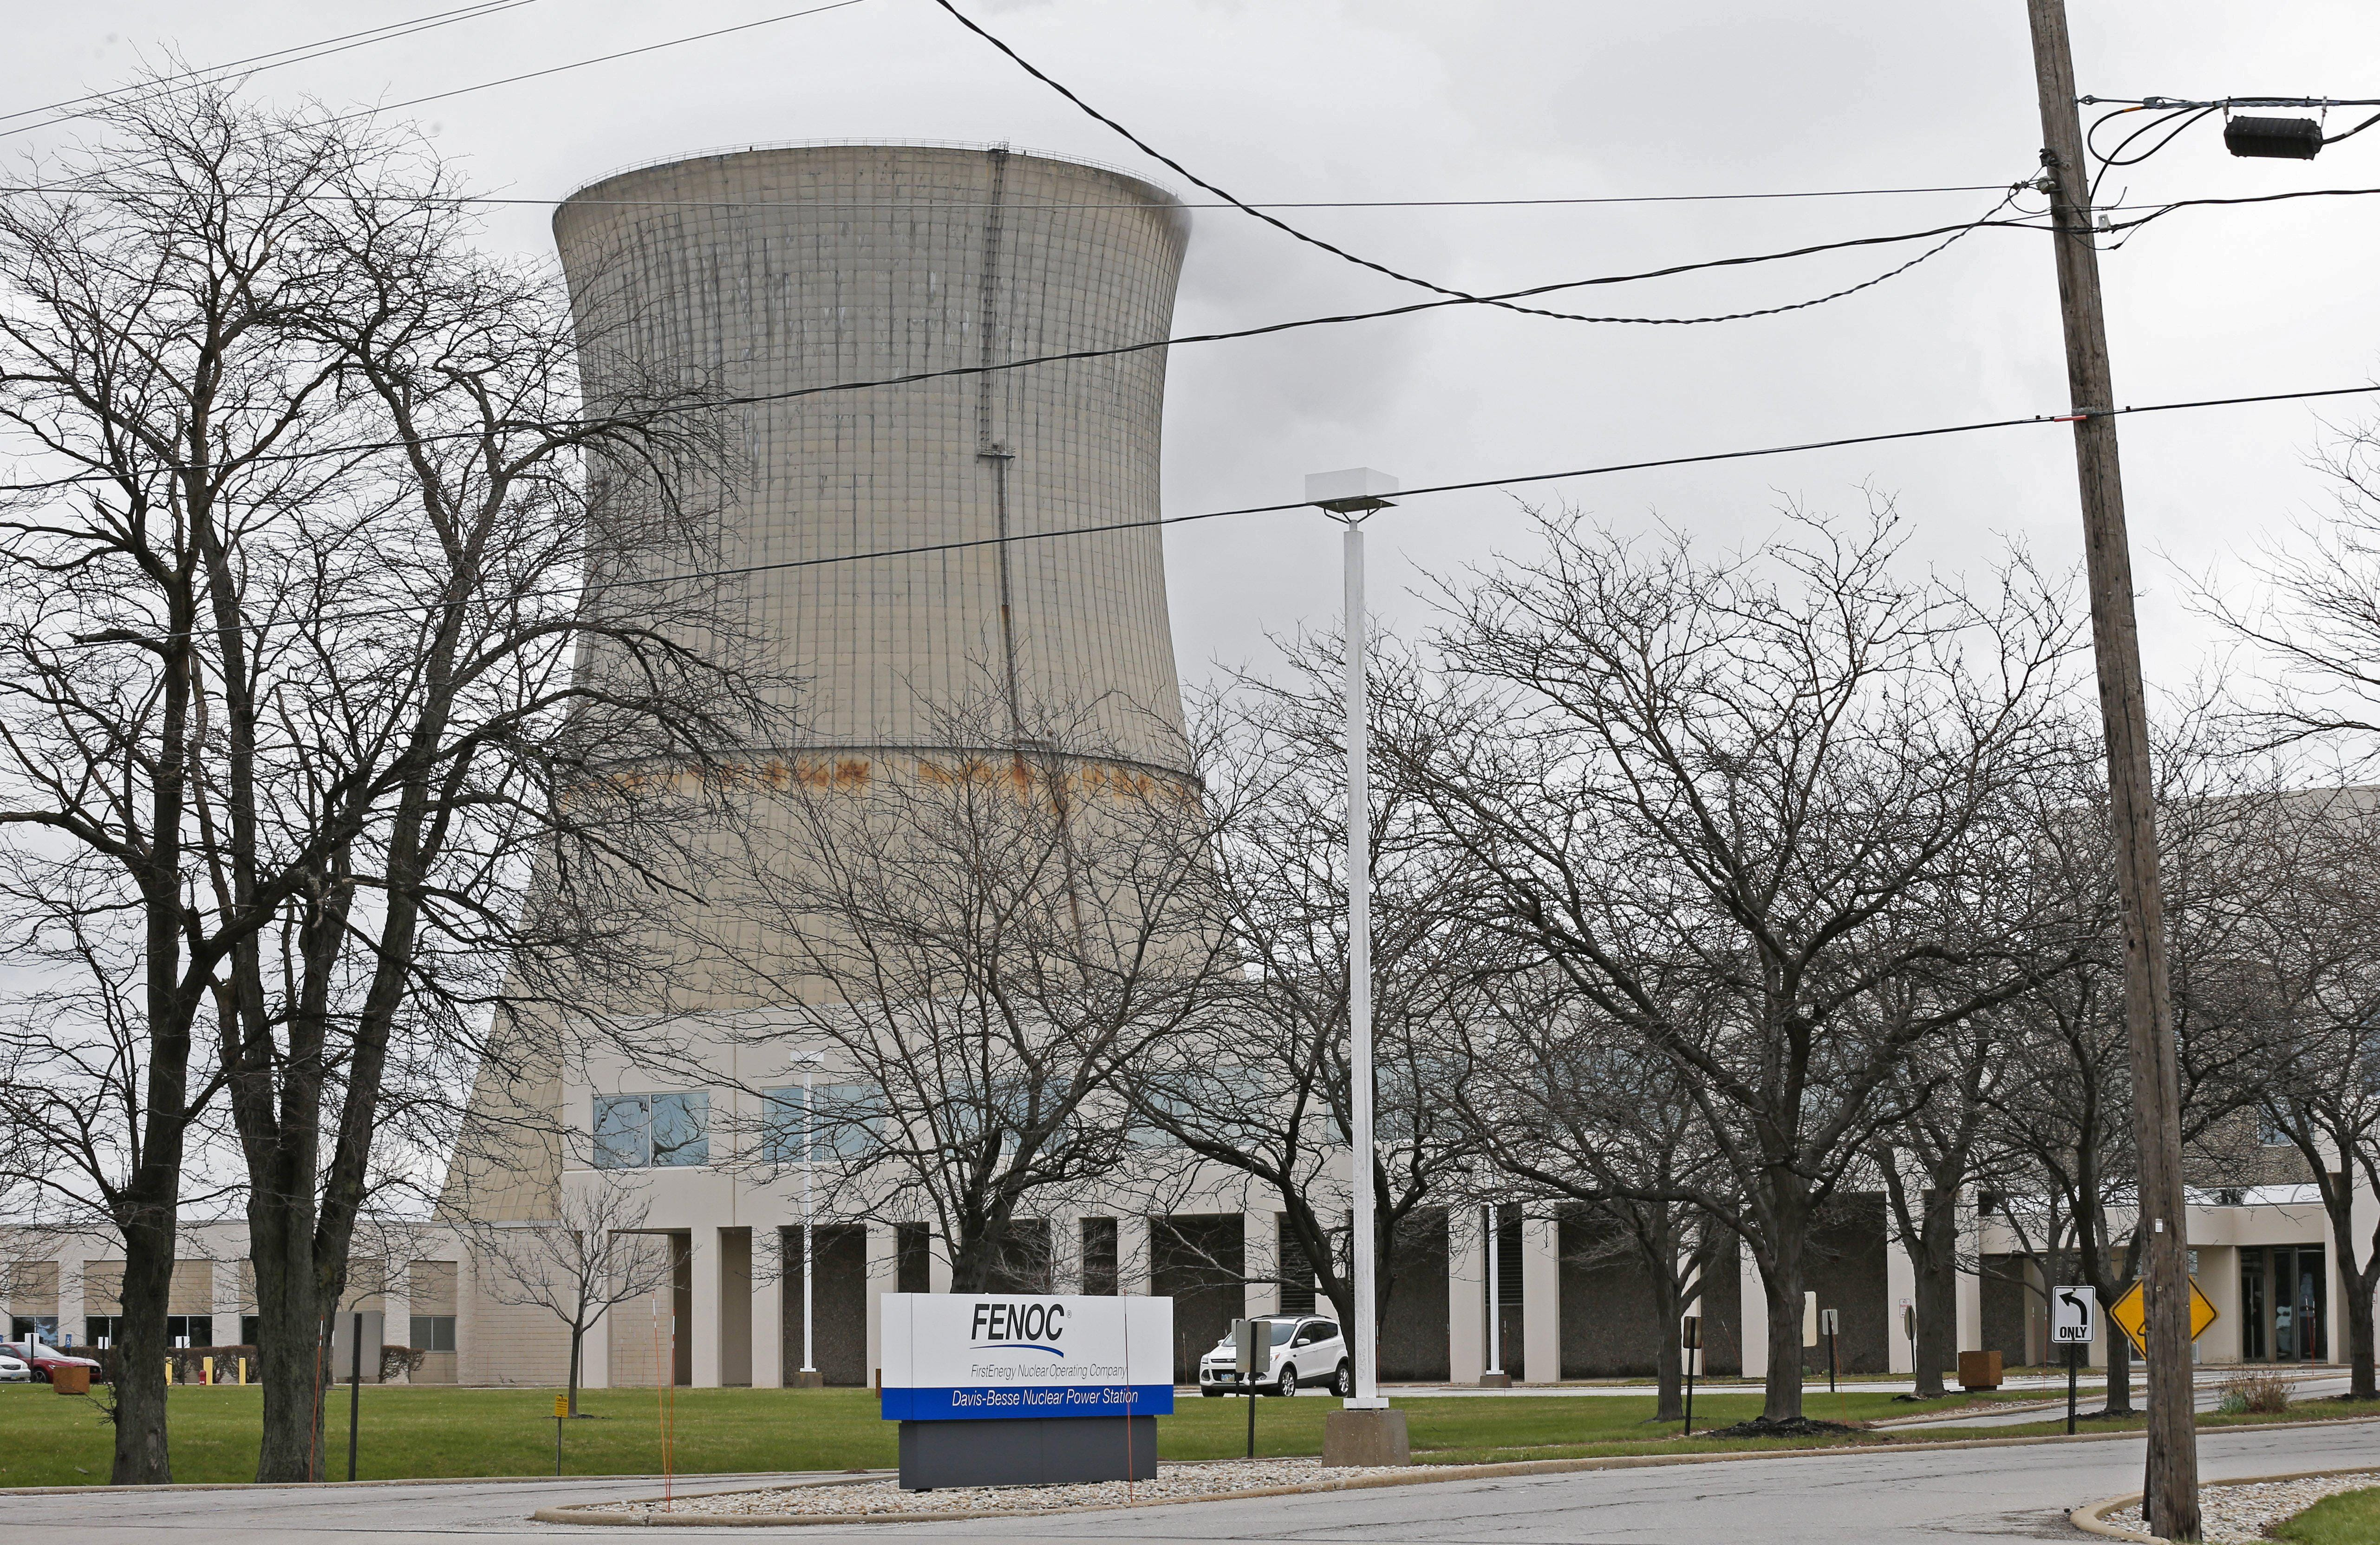 This April 4, 2017, file photo shows the entrance to FirstEnergy Corp.'s Davis-Besse Nuclear Power Station in Oak Harbor, Ohio.